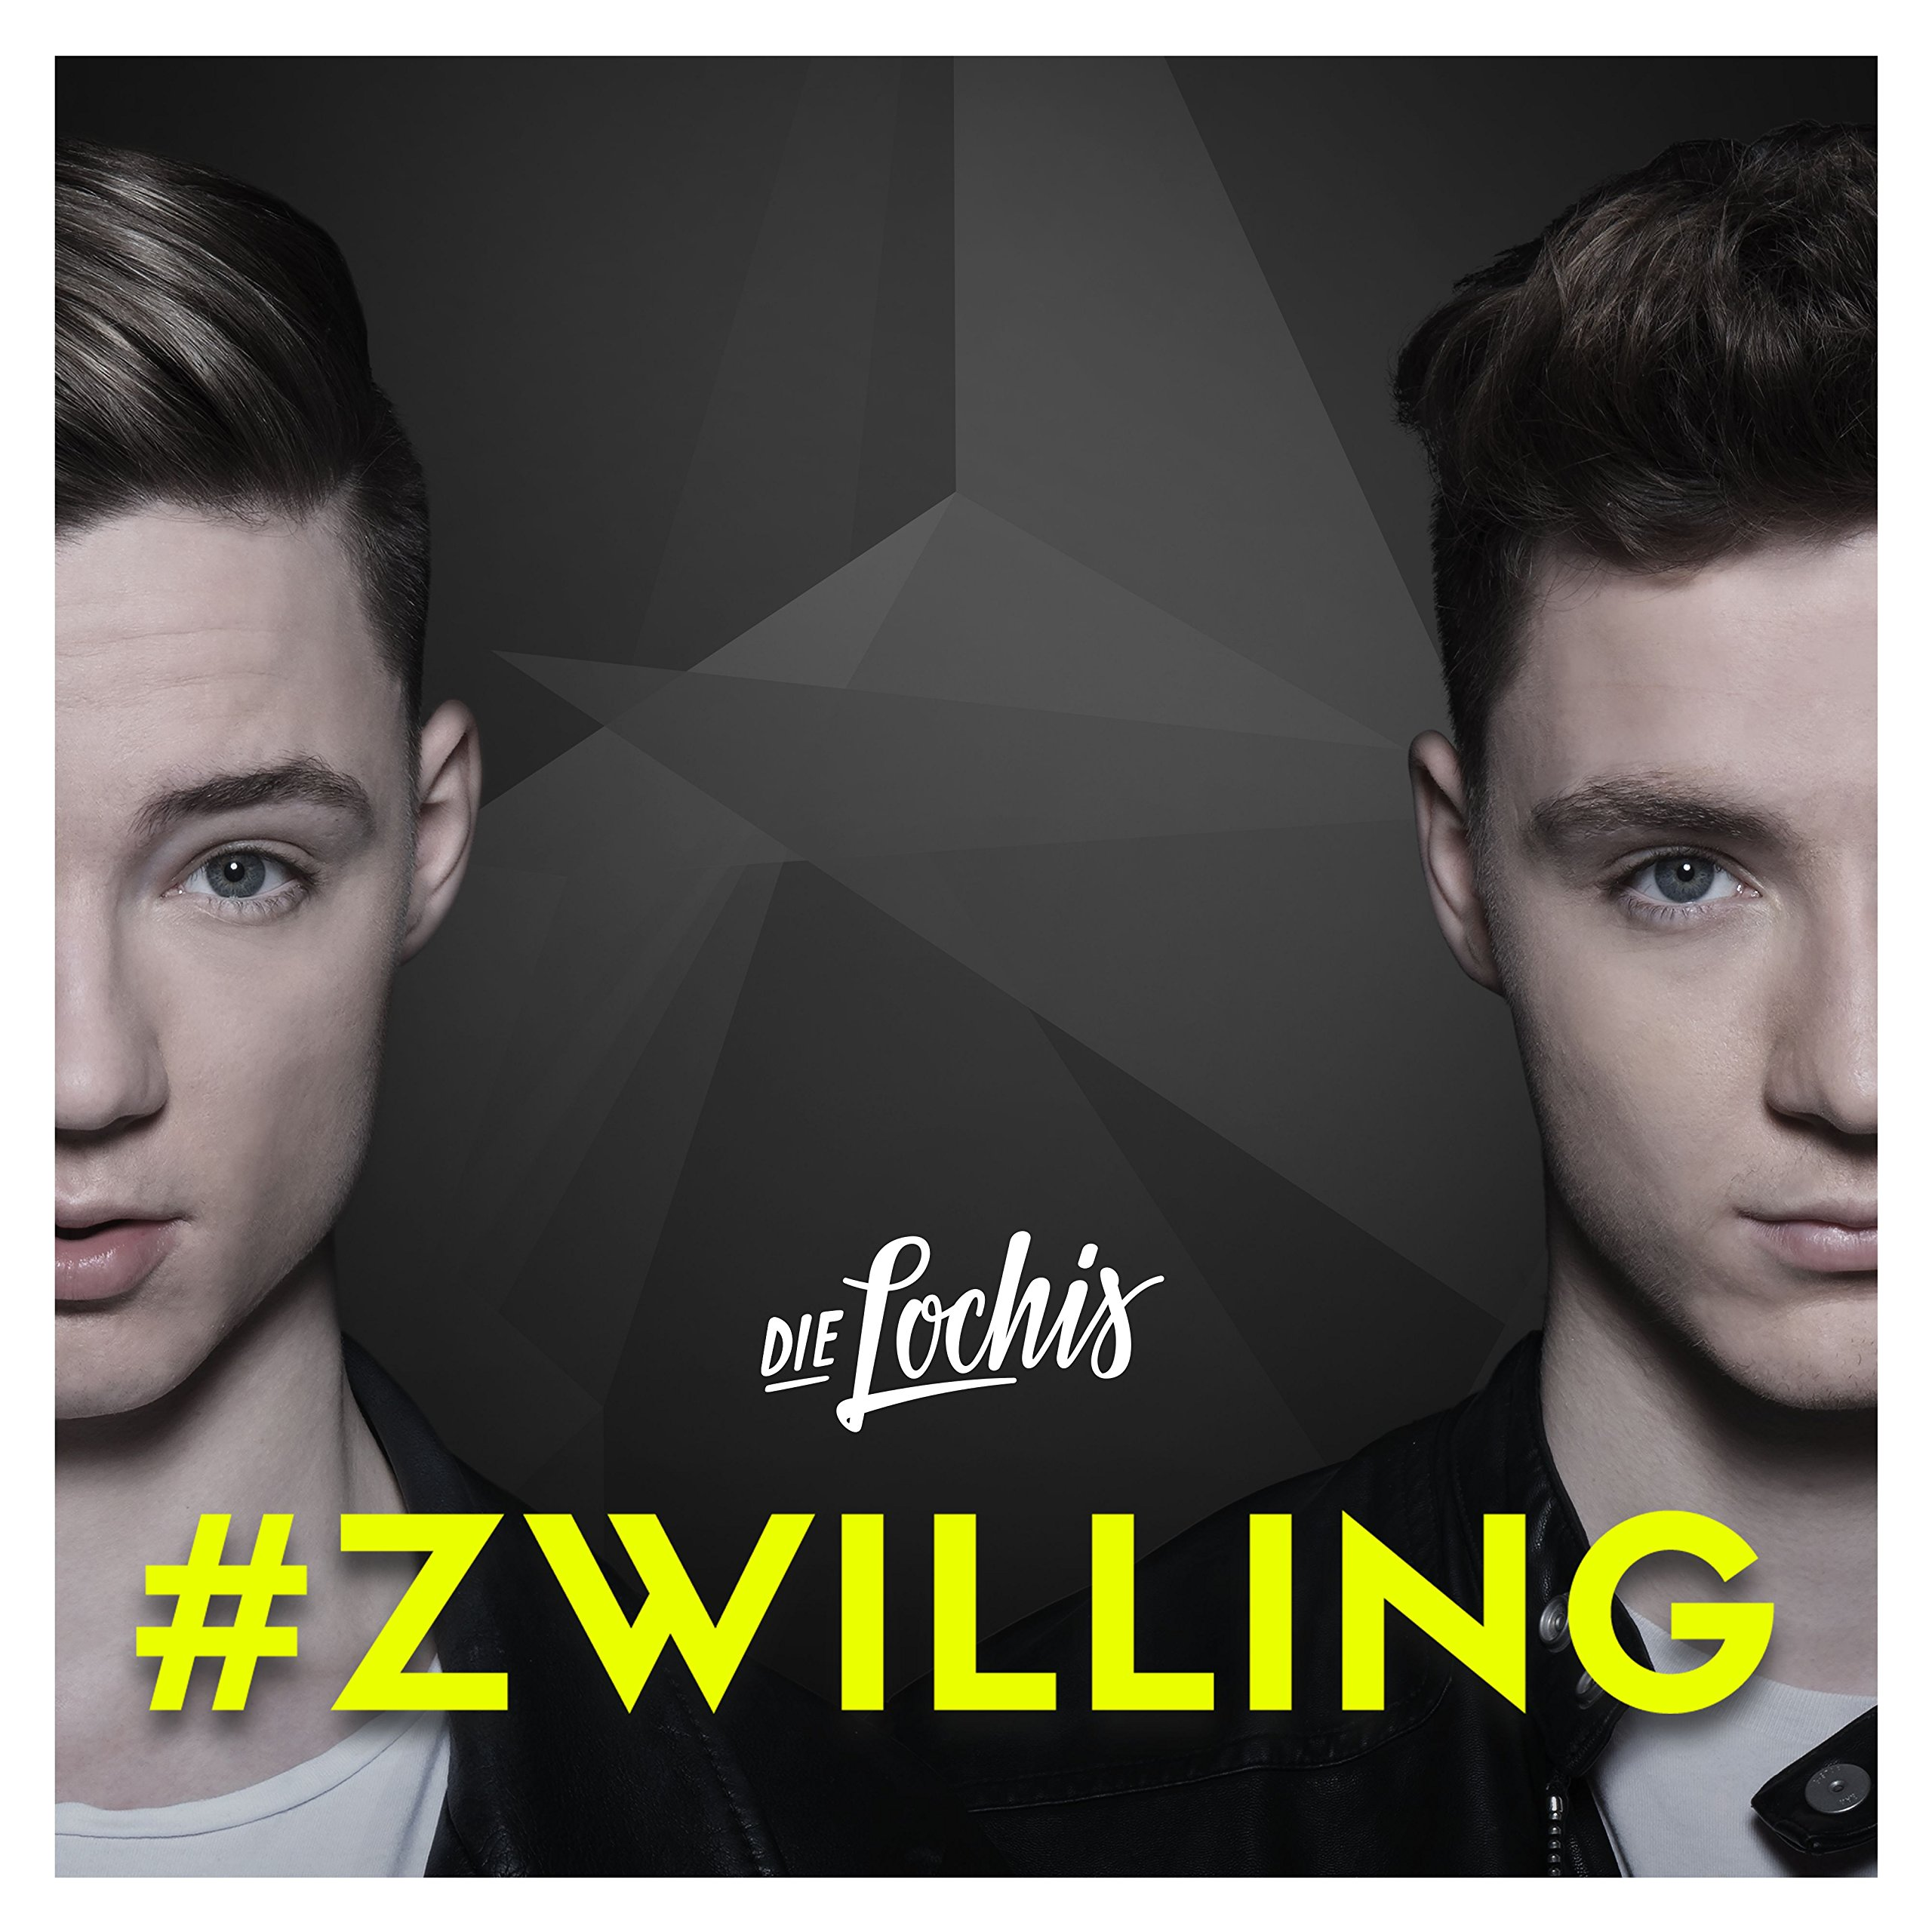 '#zwilling